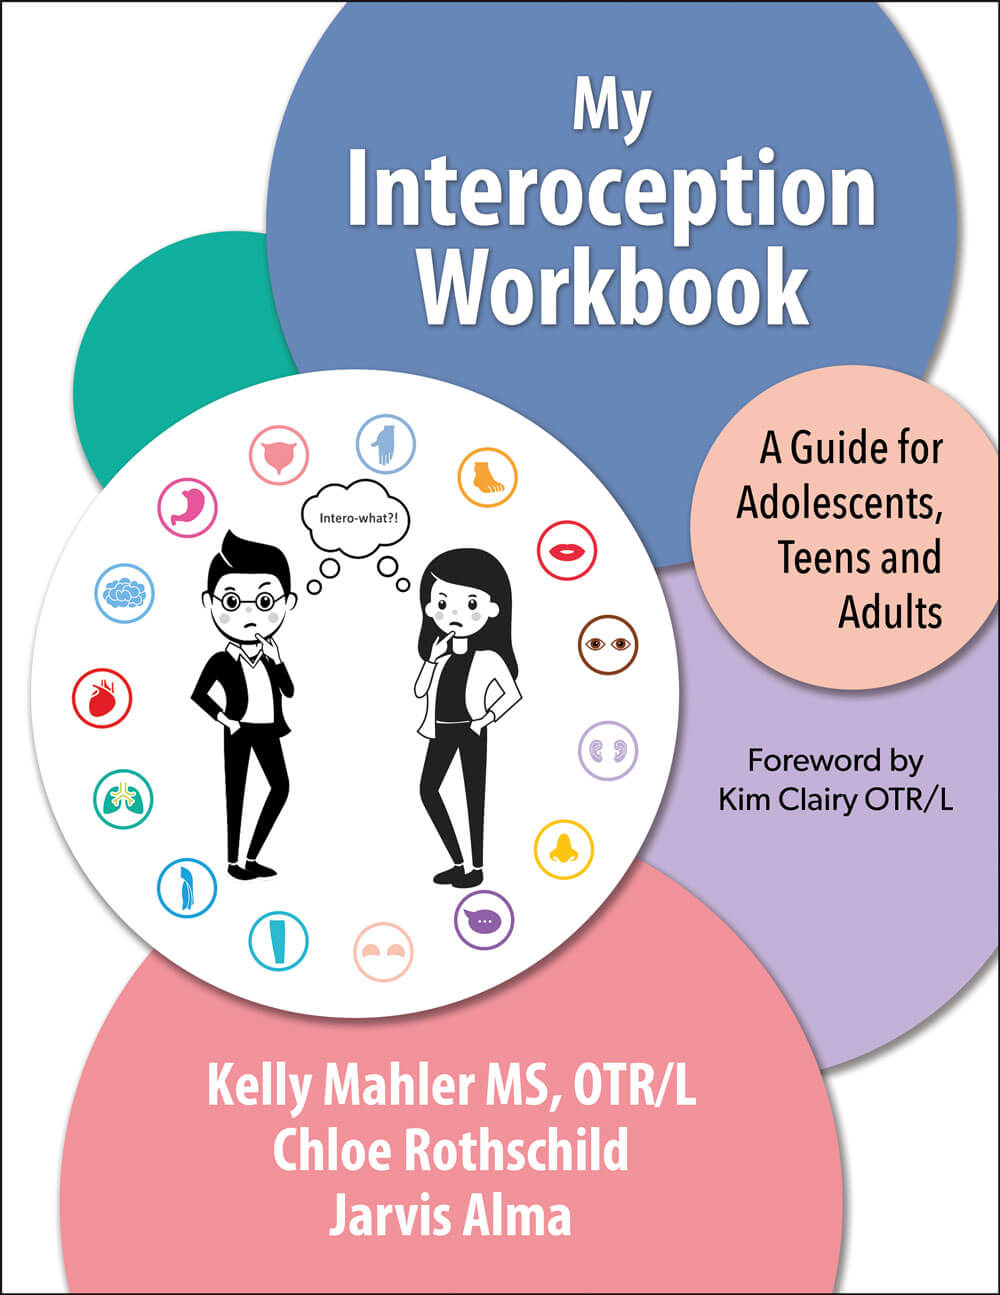 My Interoception Workbook - A Guide for Adolescents, Teens and Adults